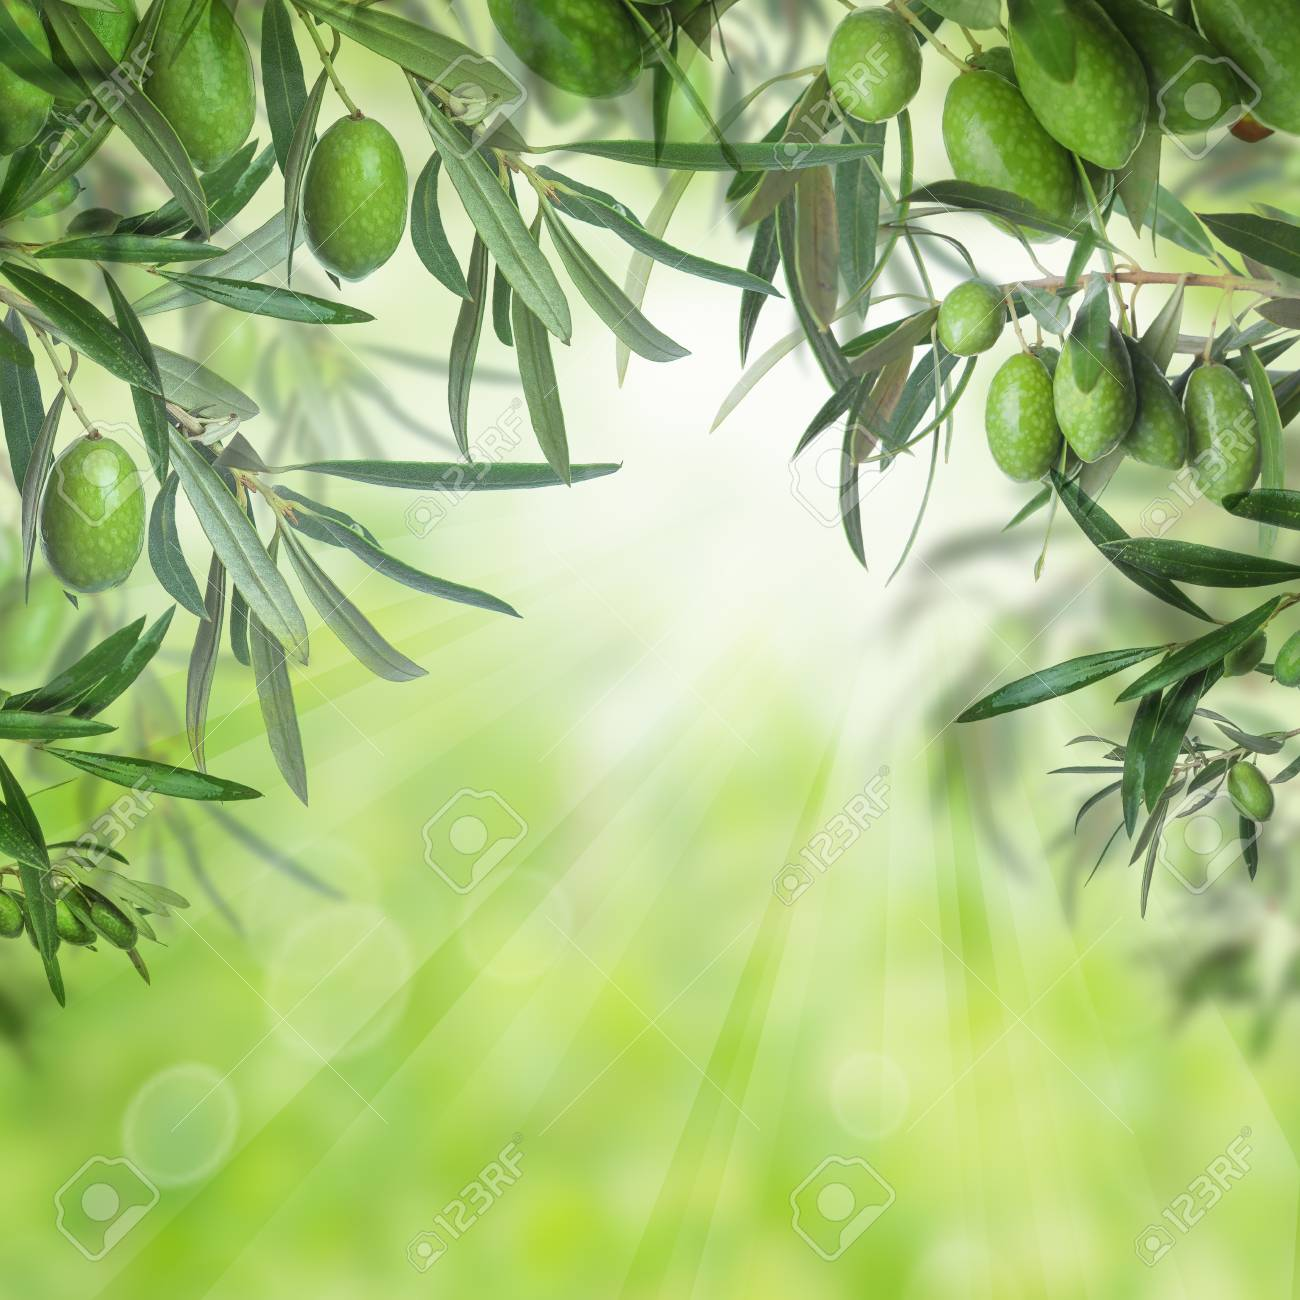 Green Olives And Leaves Of Olive Tree On Abstract Bokeh Light